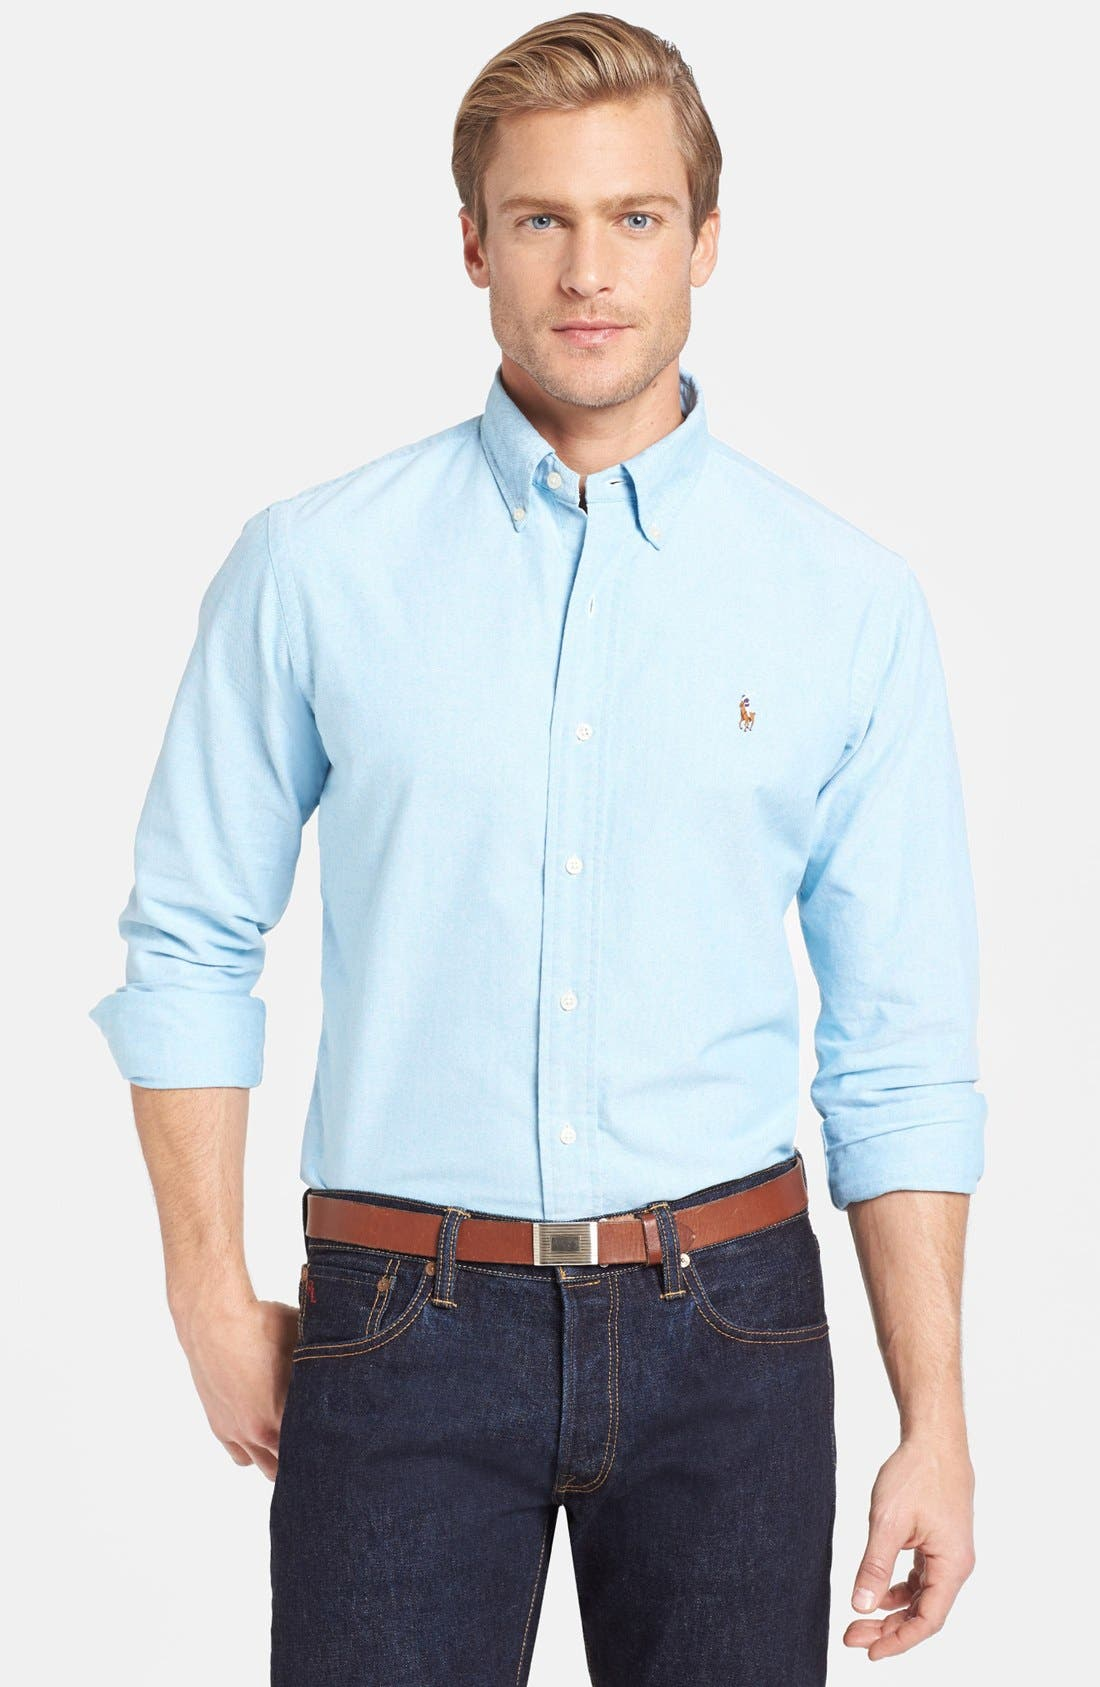 Alternate Image 1 Selected - Polo Ralph Lauren Slim Fit Oxford Sport Shirt